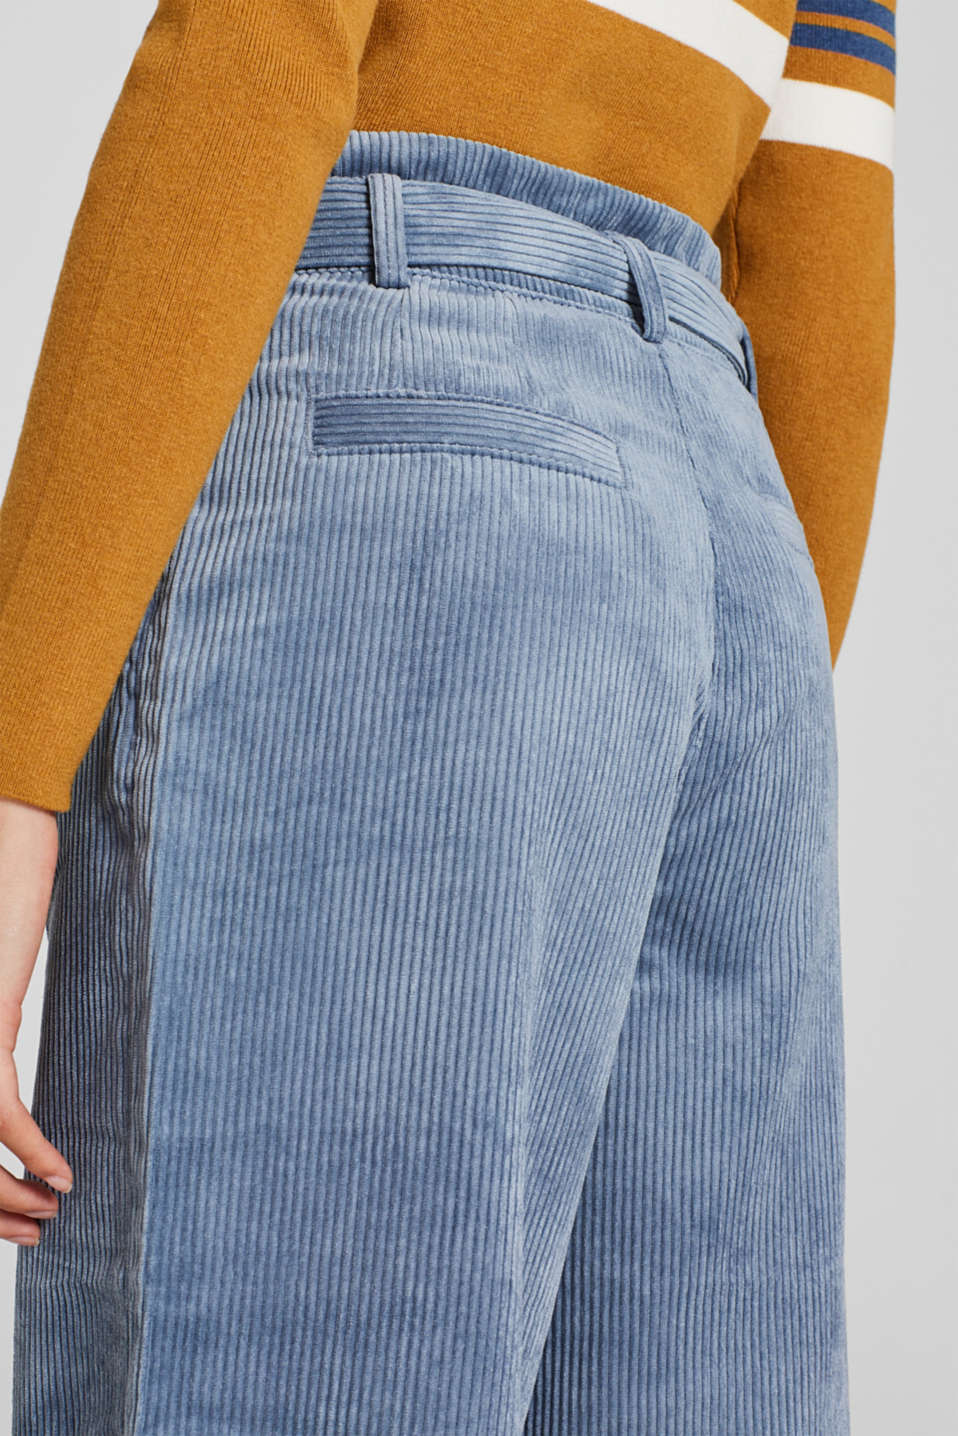 Pants woven, GREY BLUE, detail image number 6